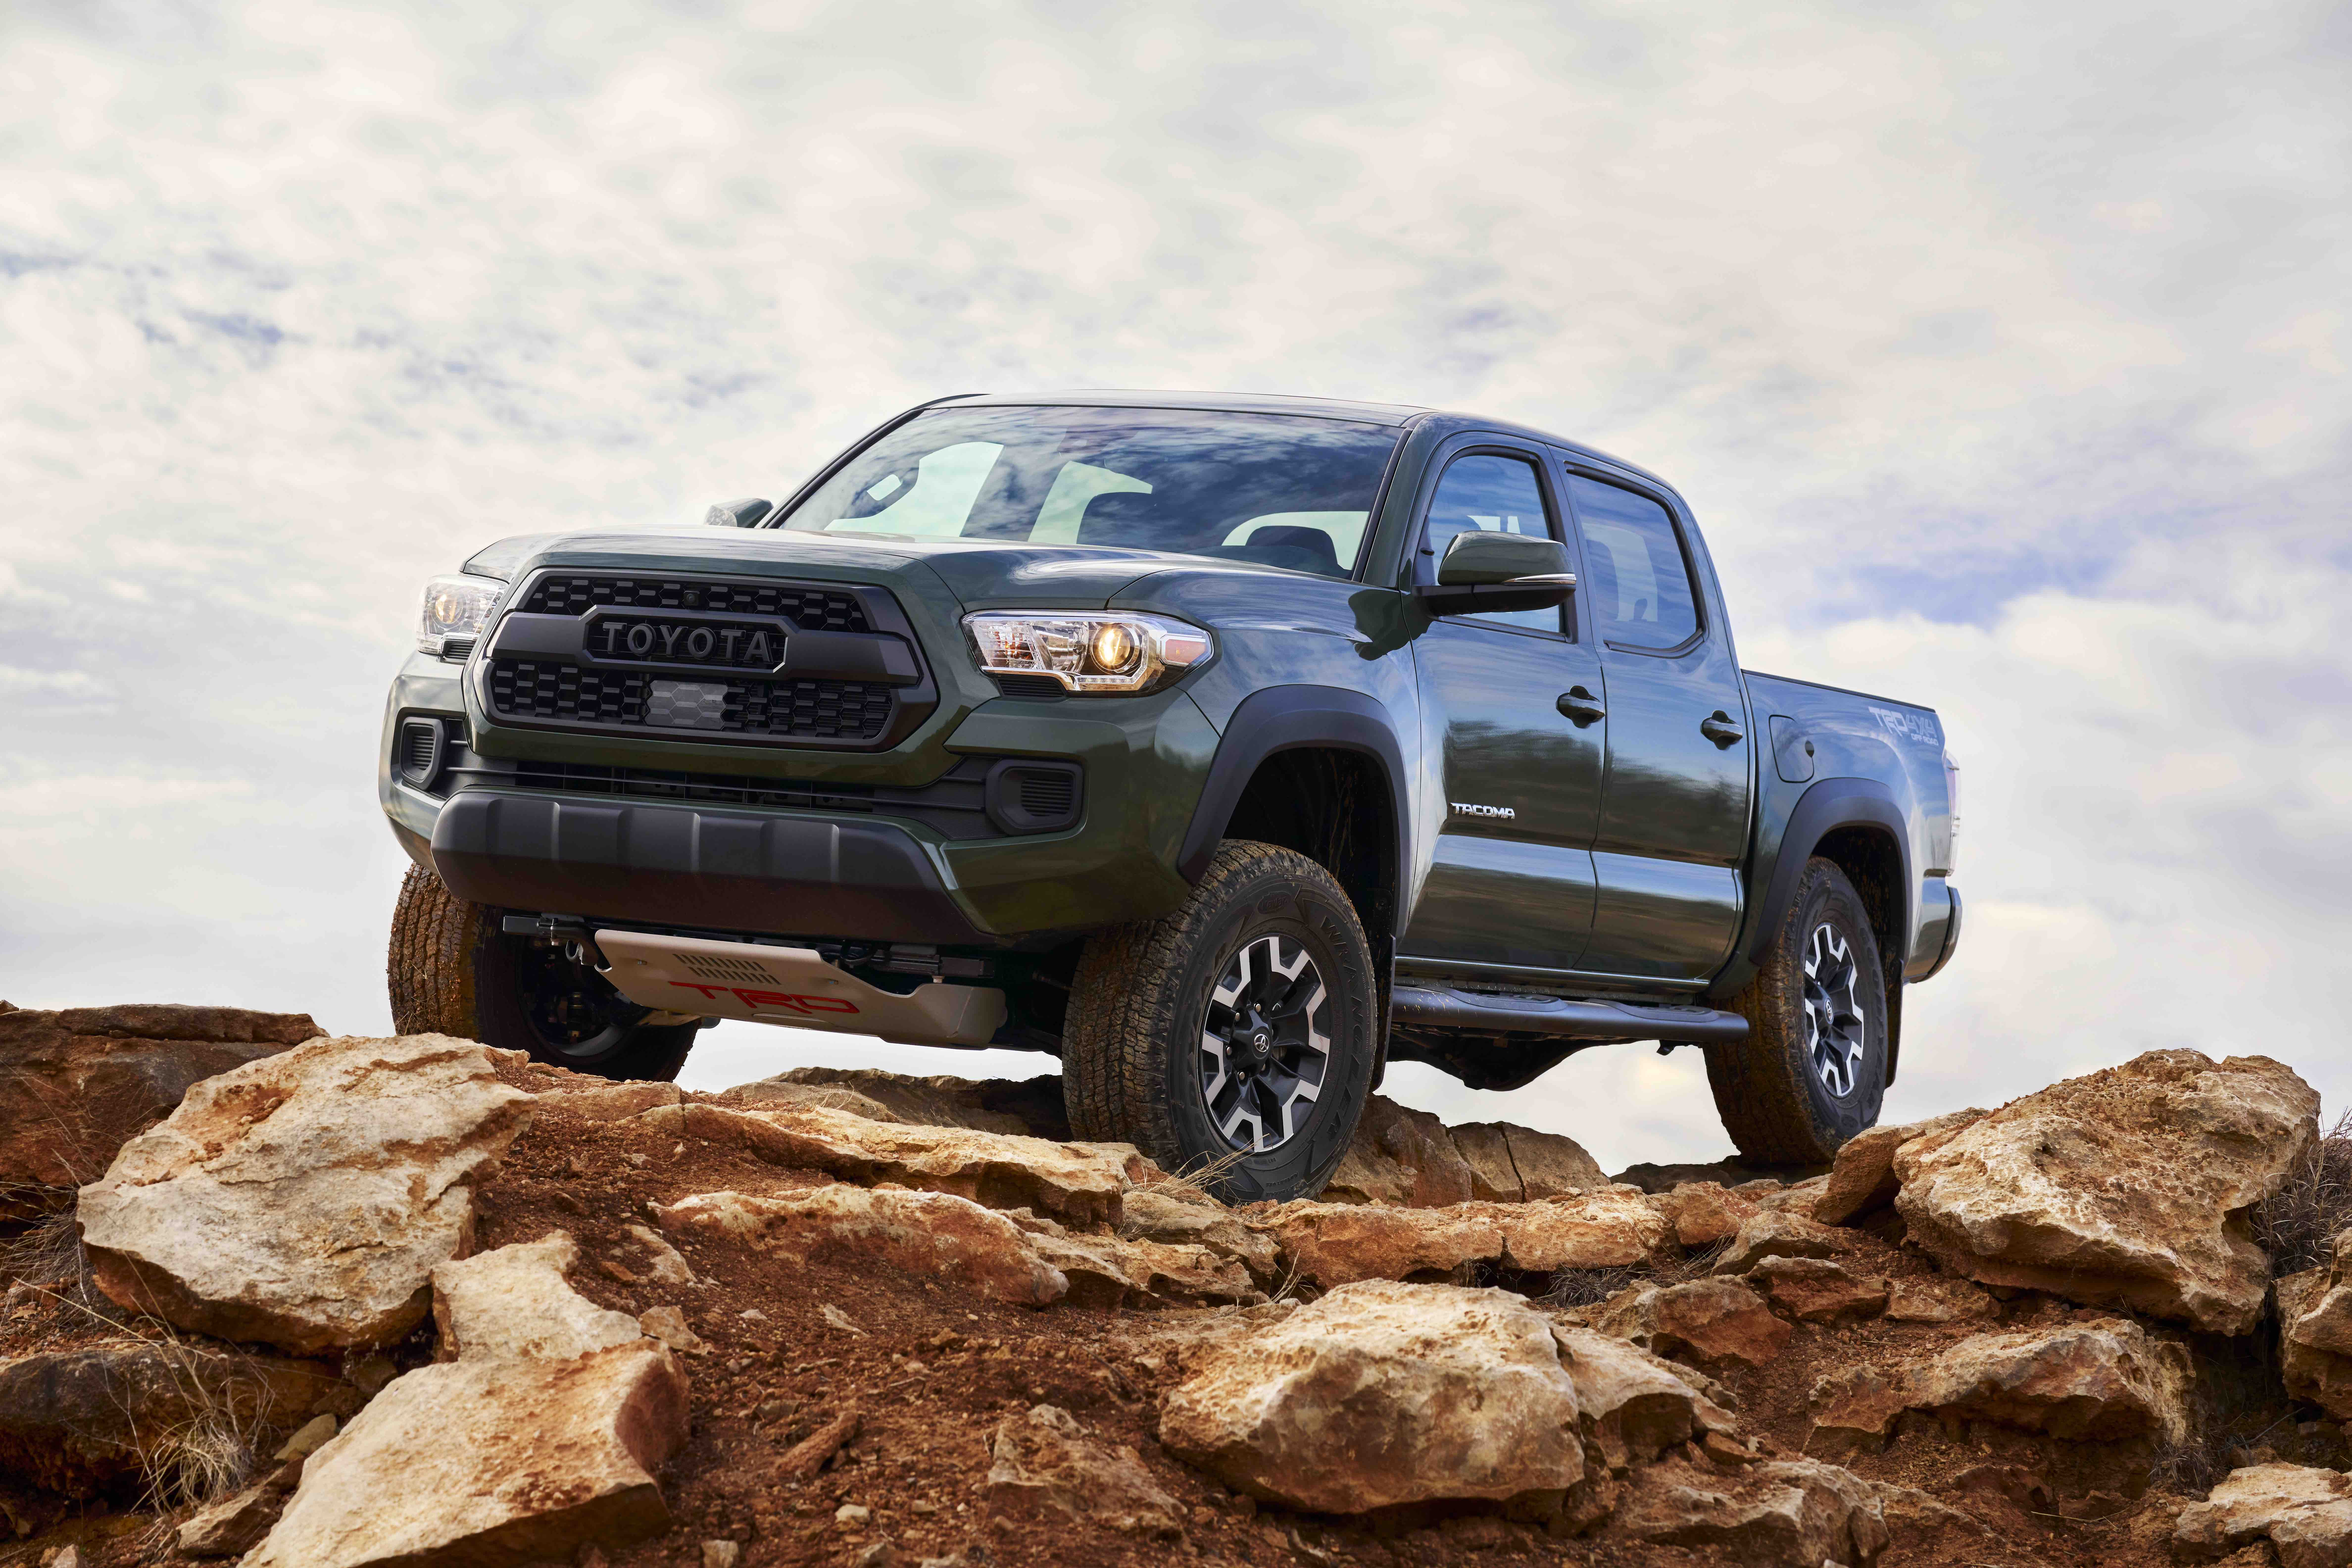 News: Toyota Now Offers A TRD Lift Kit Option For 2020 And Newer Tacoma Models